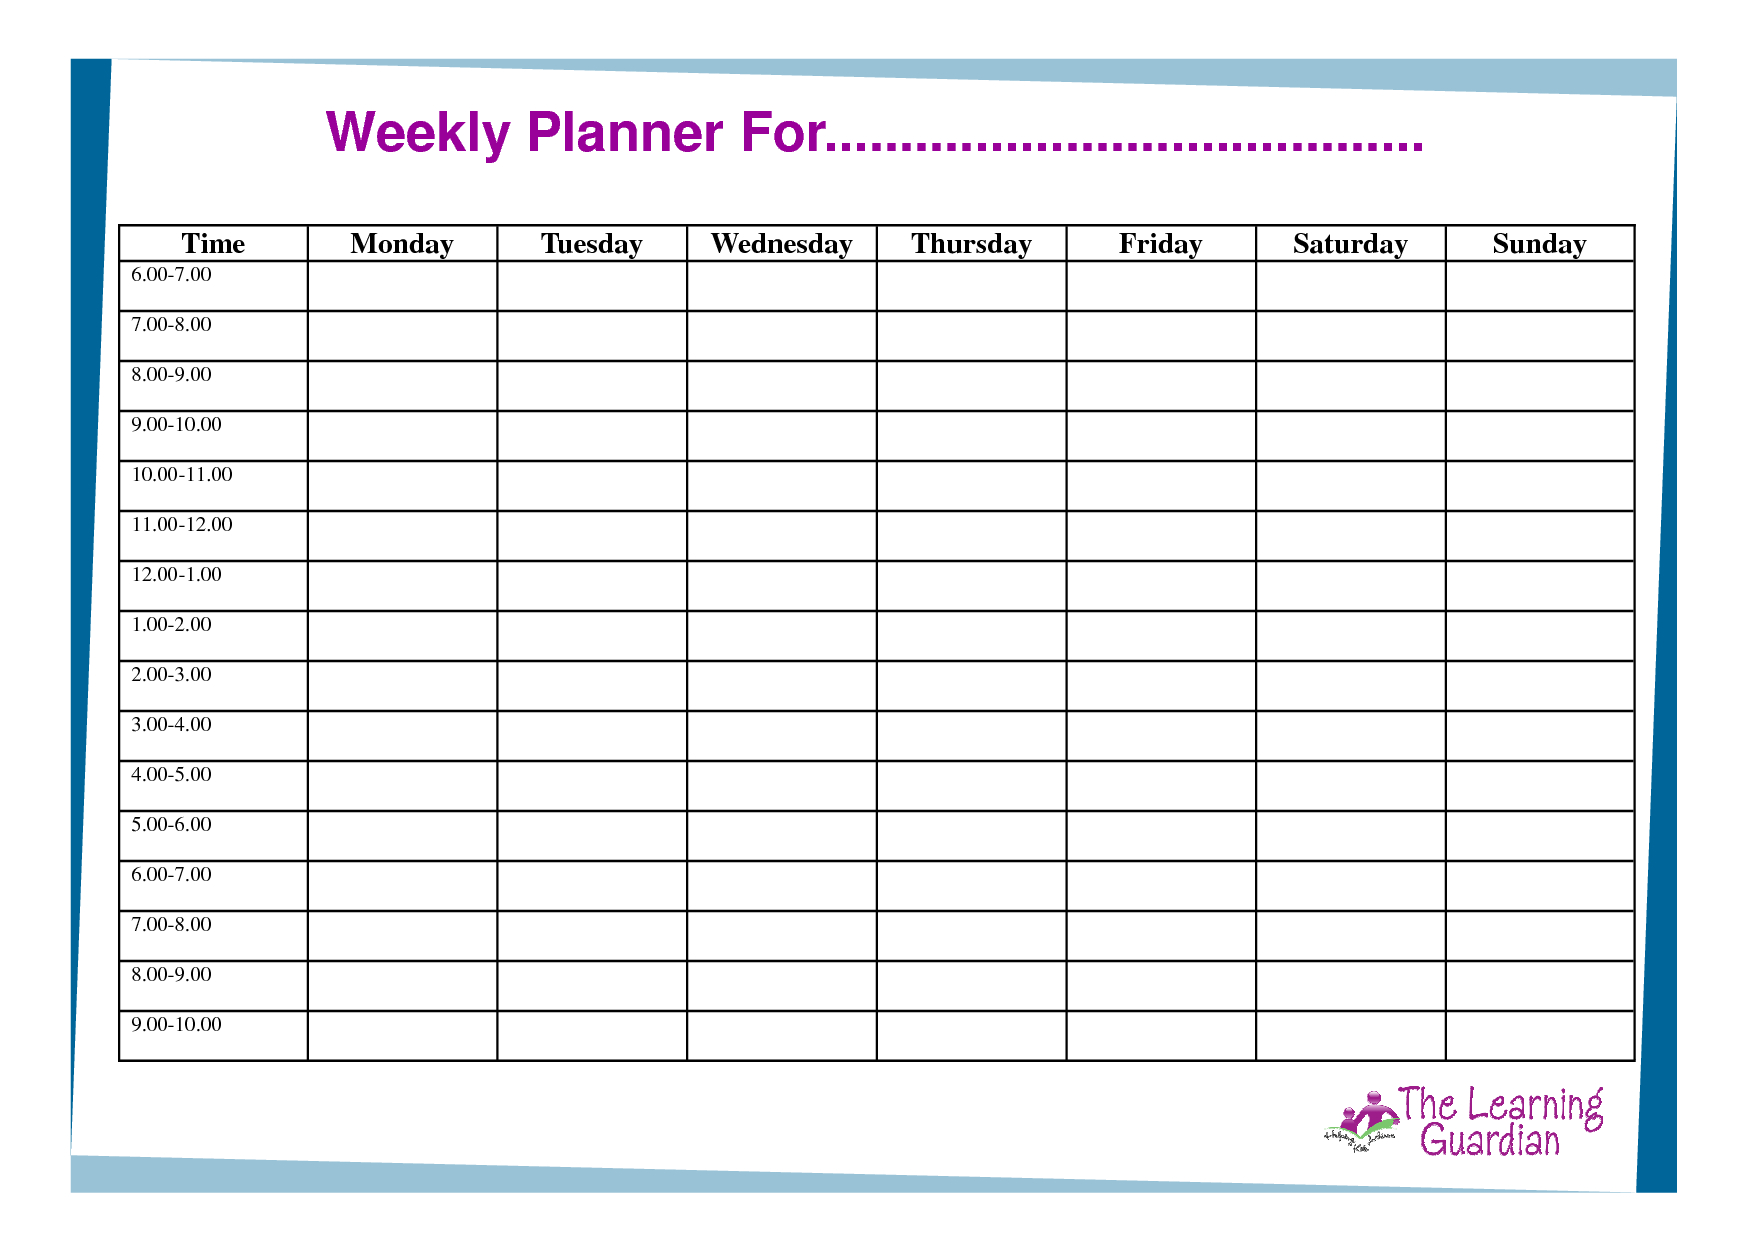 Free Printable Weekly Calendar Templates | Weekly Planner For Time throughout Blank Calendar Hourly Schedule